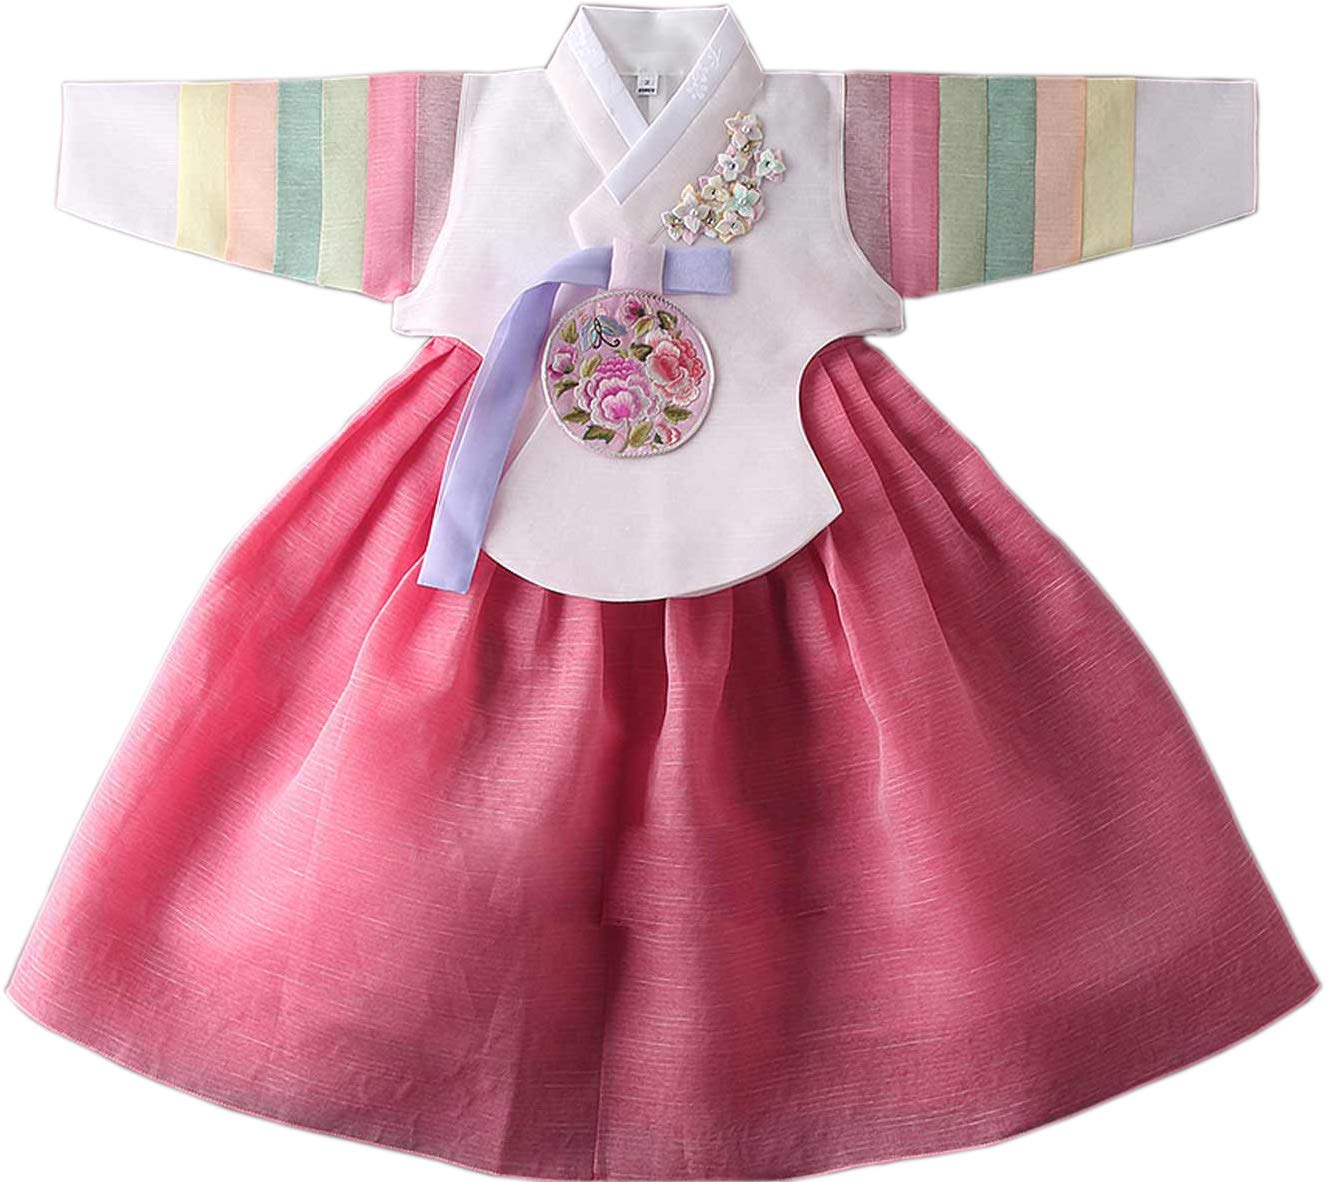 Korean Traditional Hanbok Babies Girls Costumes Dress Birthday Party DOLBOK 1-15 Ages yjg101 (1 Age)